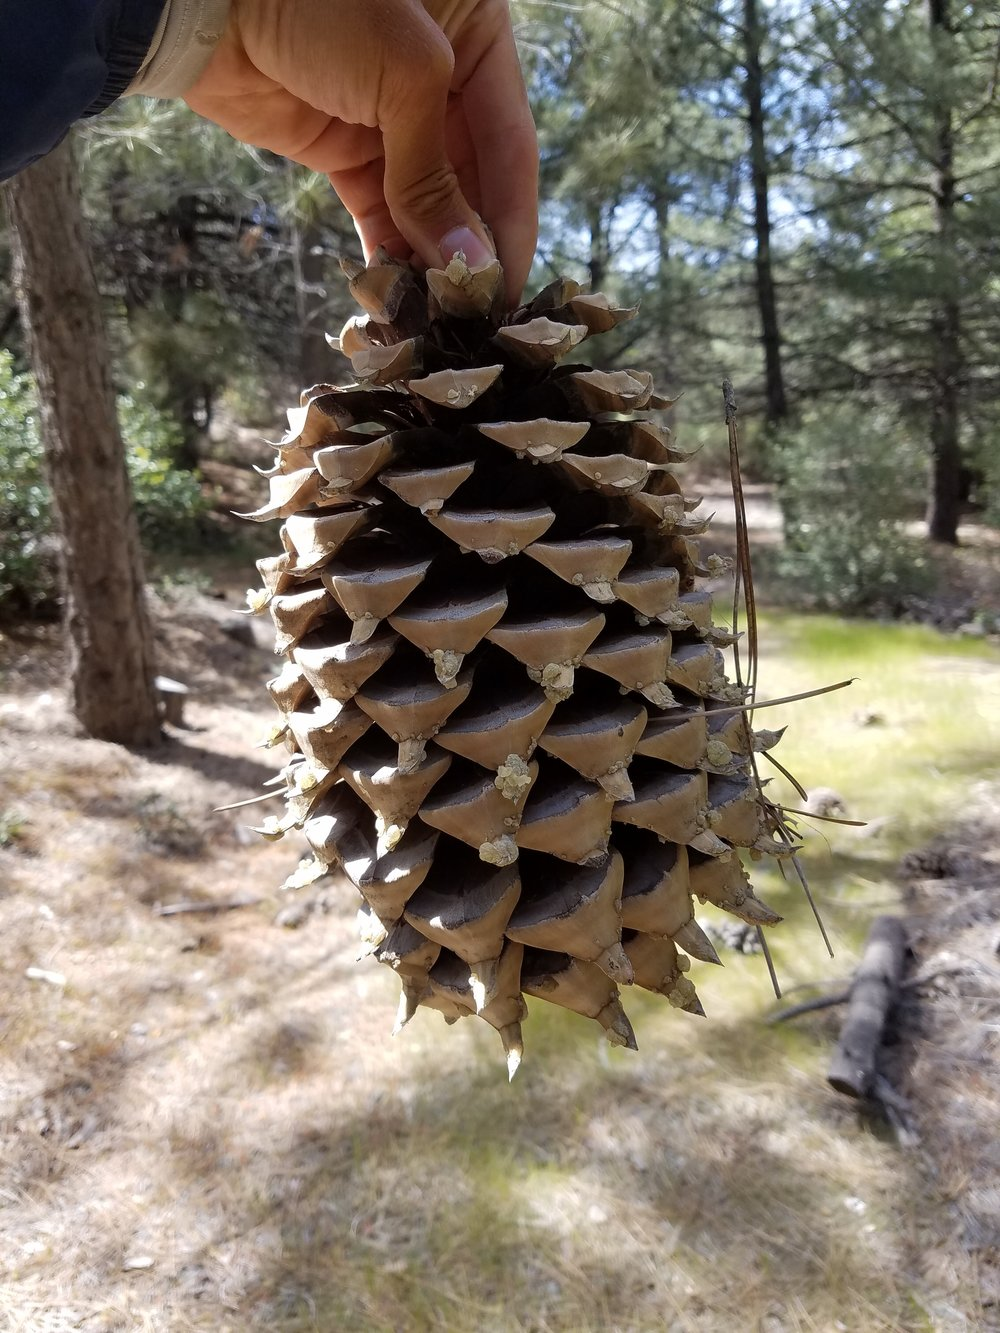 Large pinecones were everywhere.